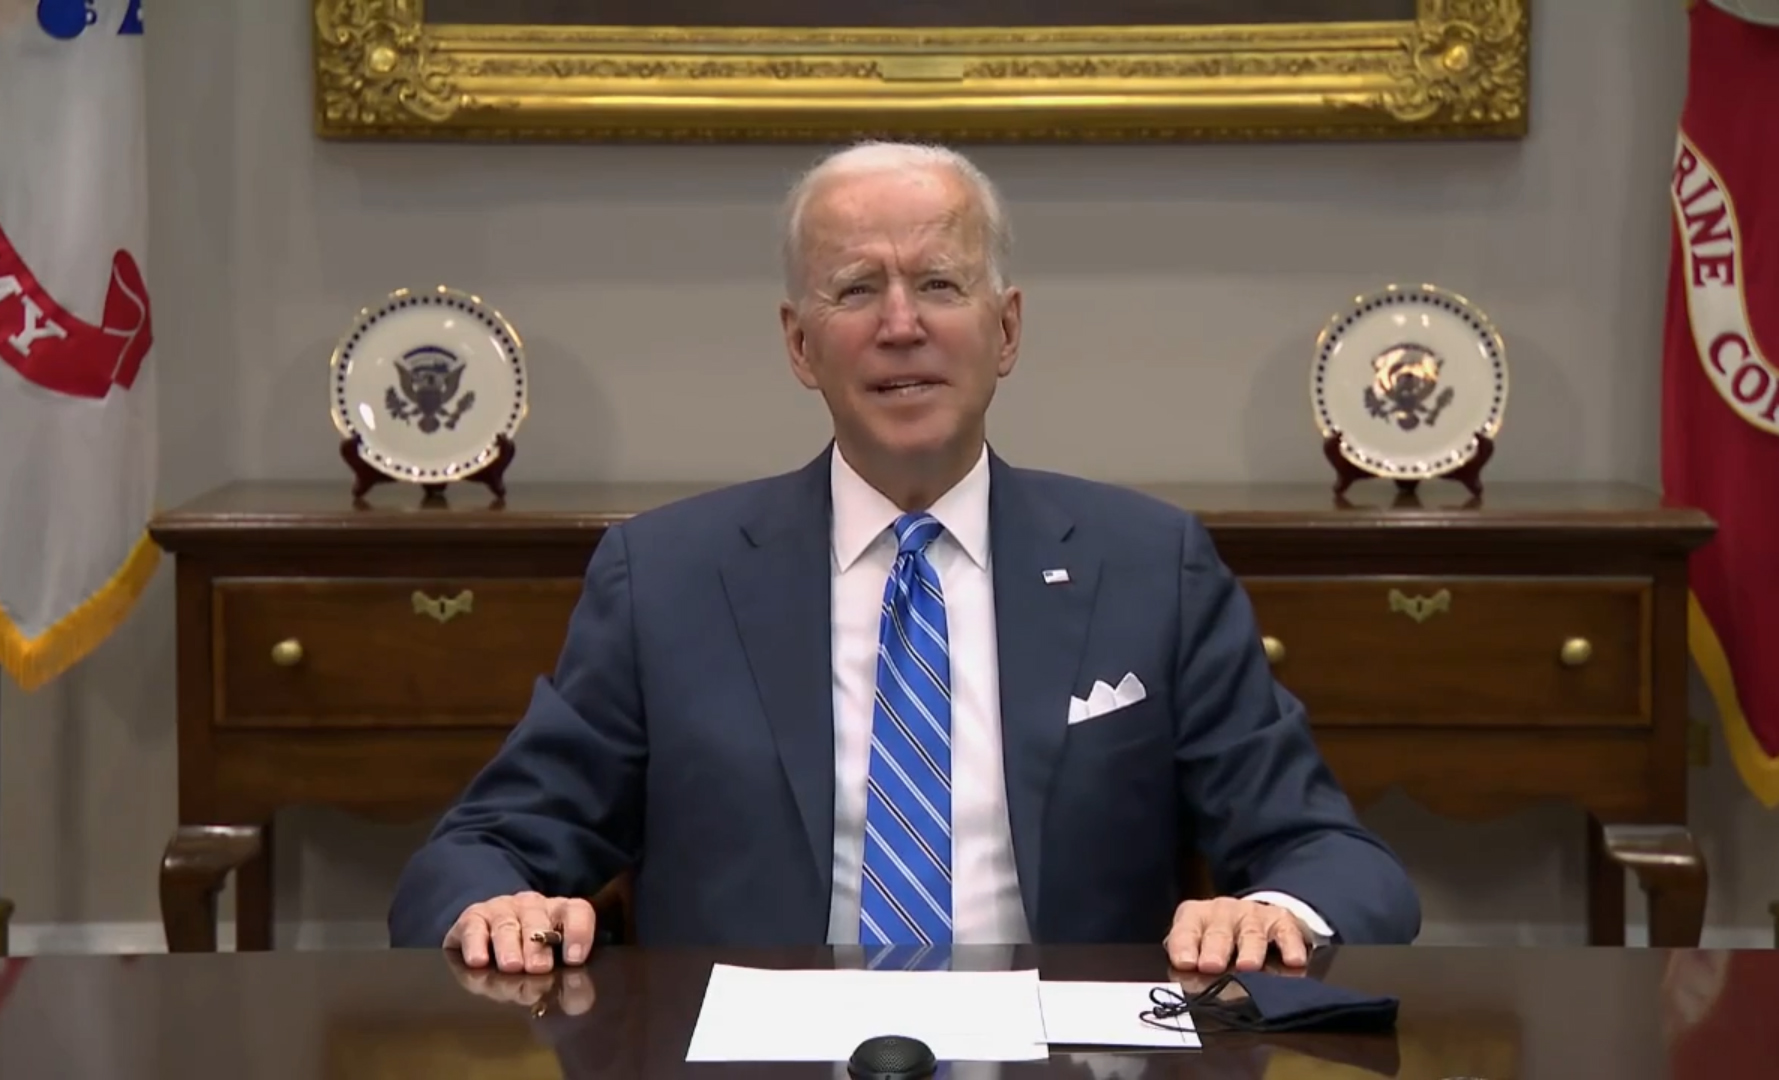 Biden: Indian-Americans Taking Over The Country